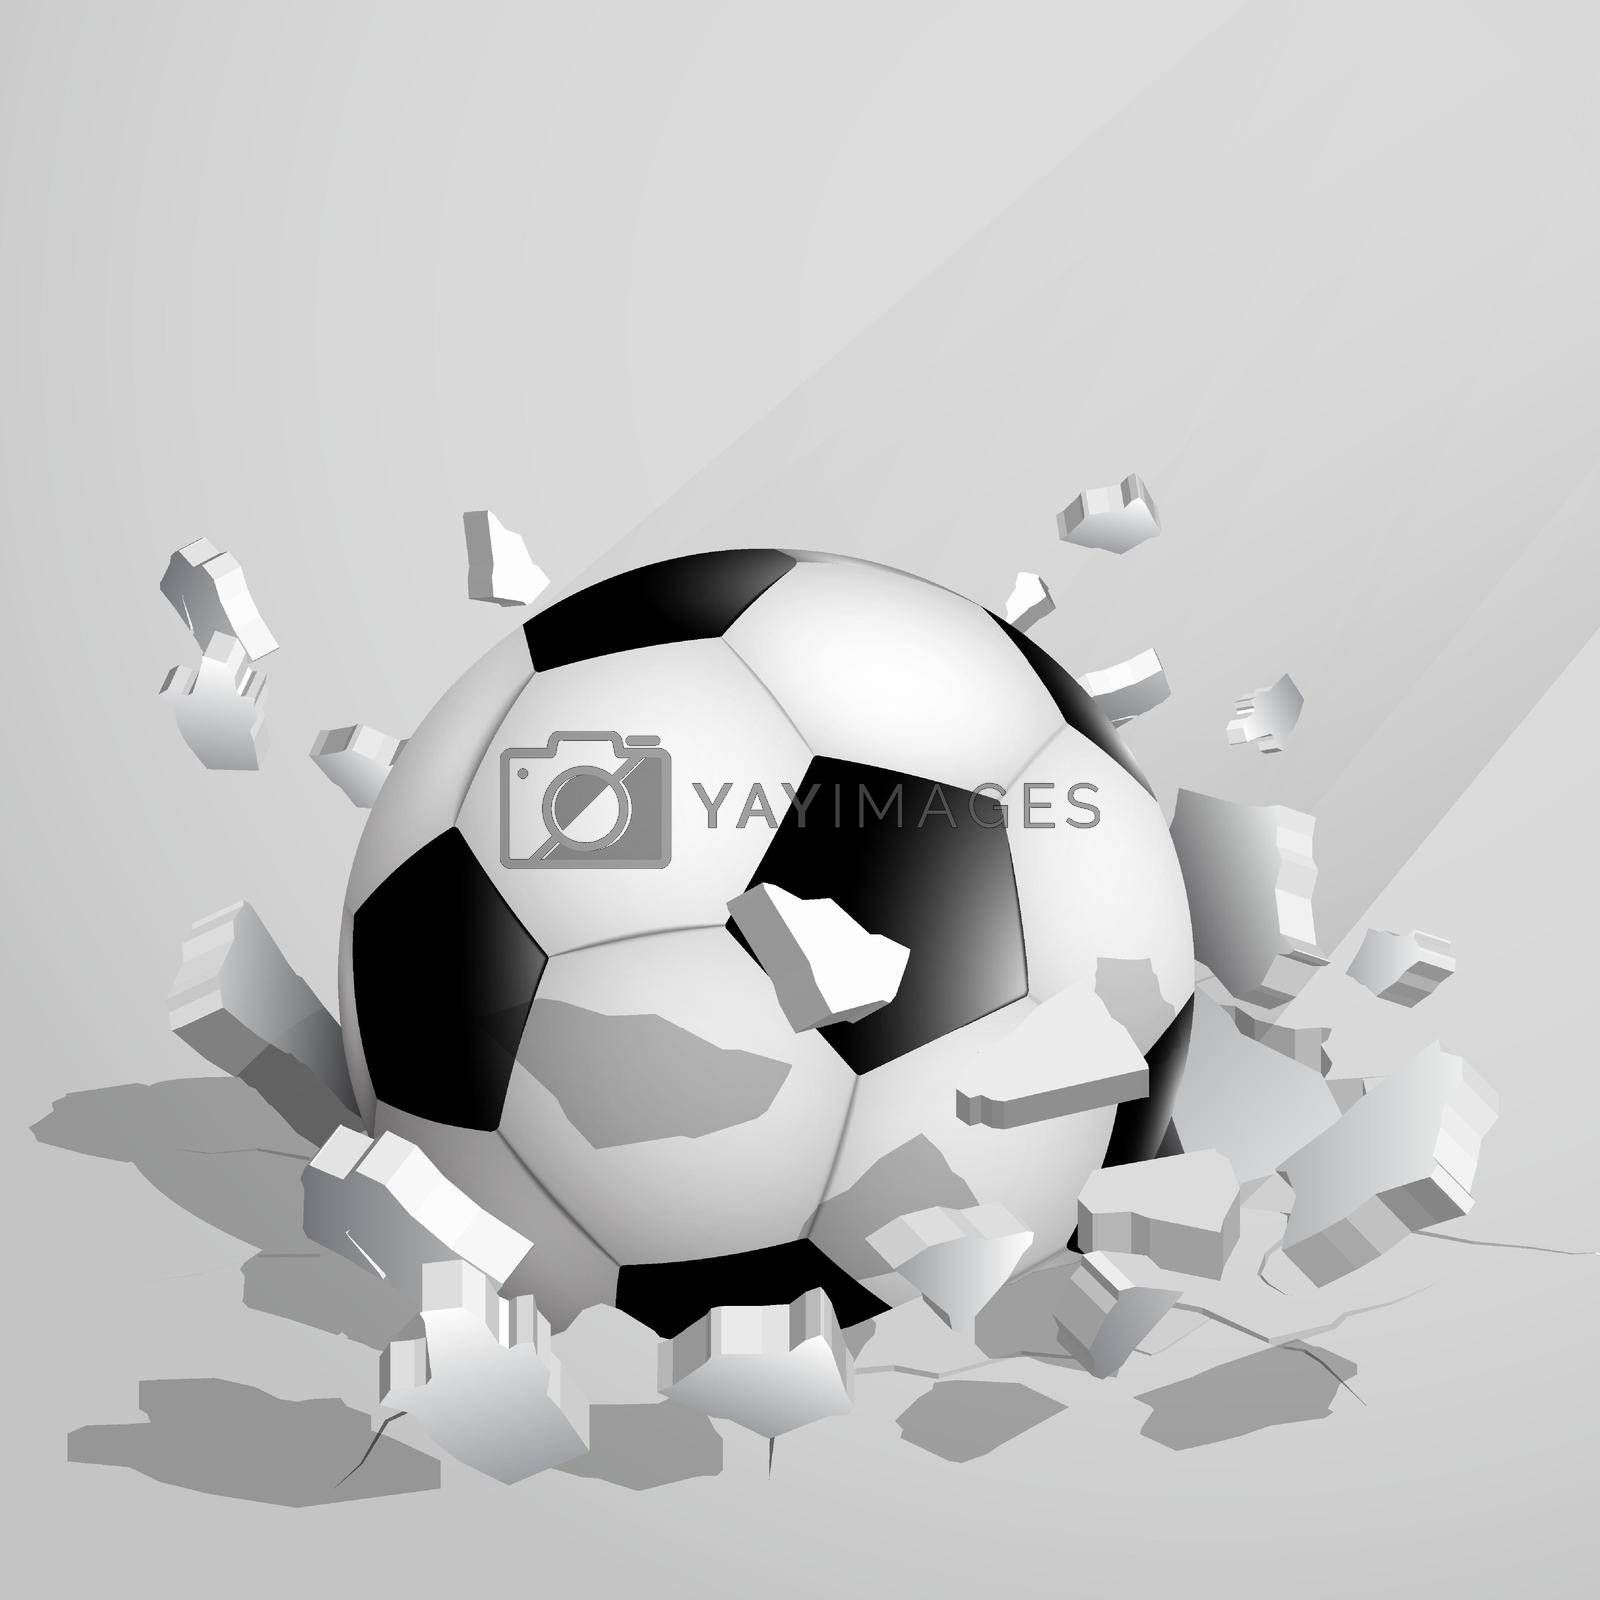 sport soccer ball crashed into the ground at high speed and breaks into shards, cracks. Inflicting heavy damage. Vector